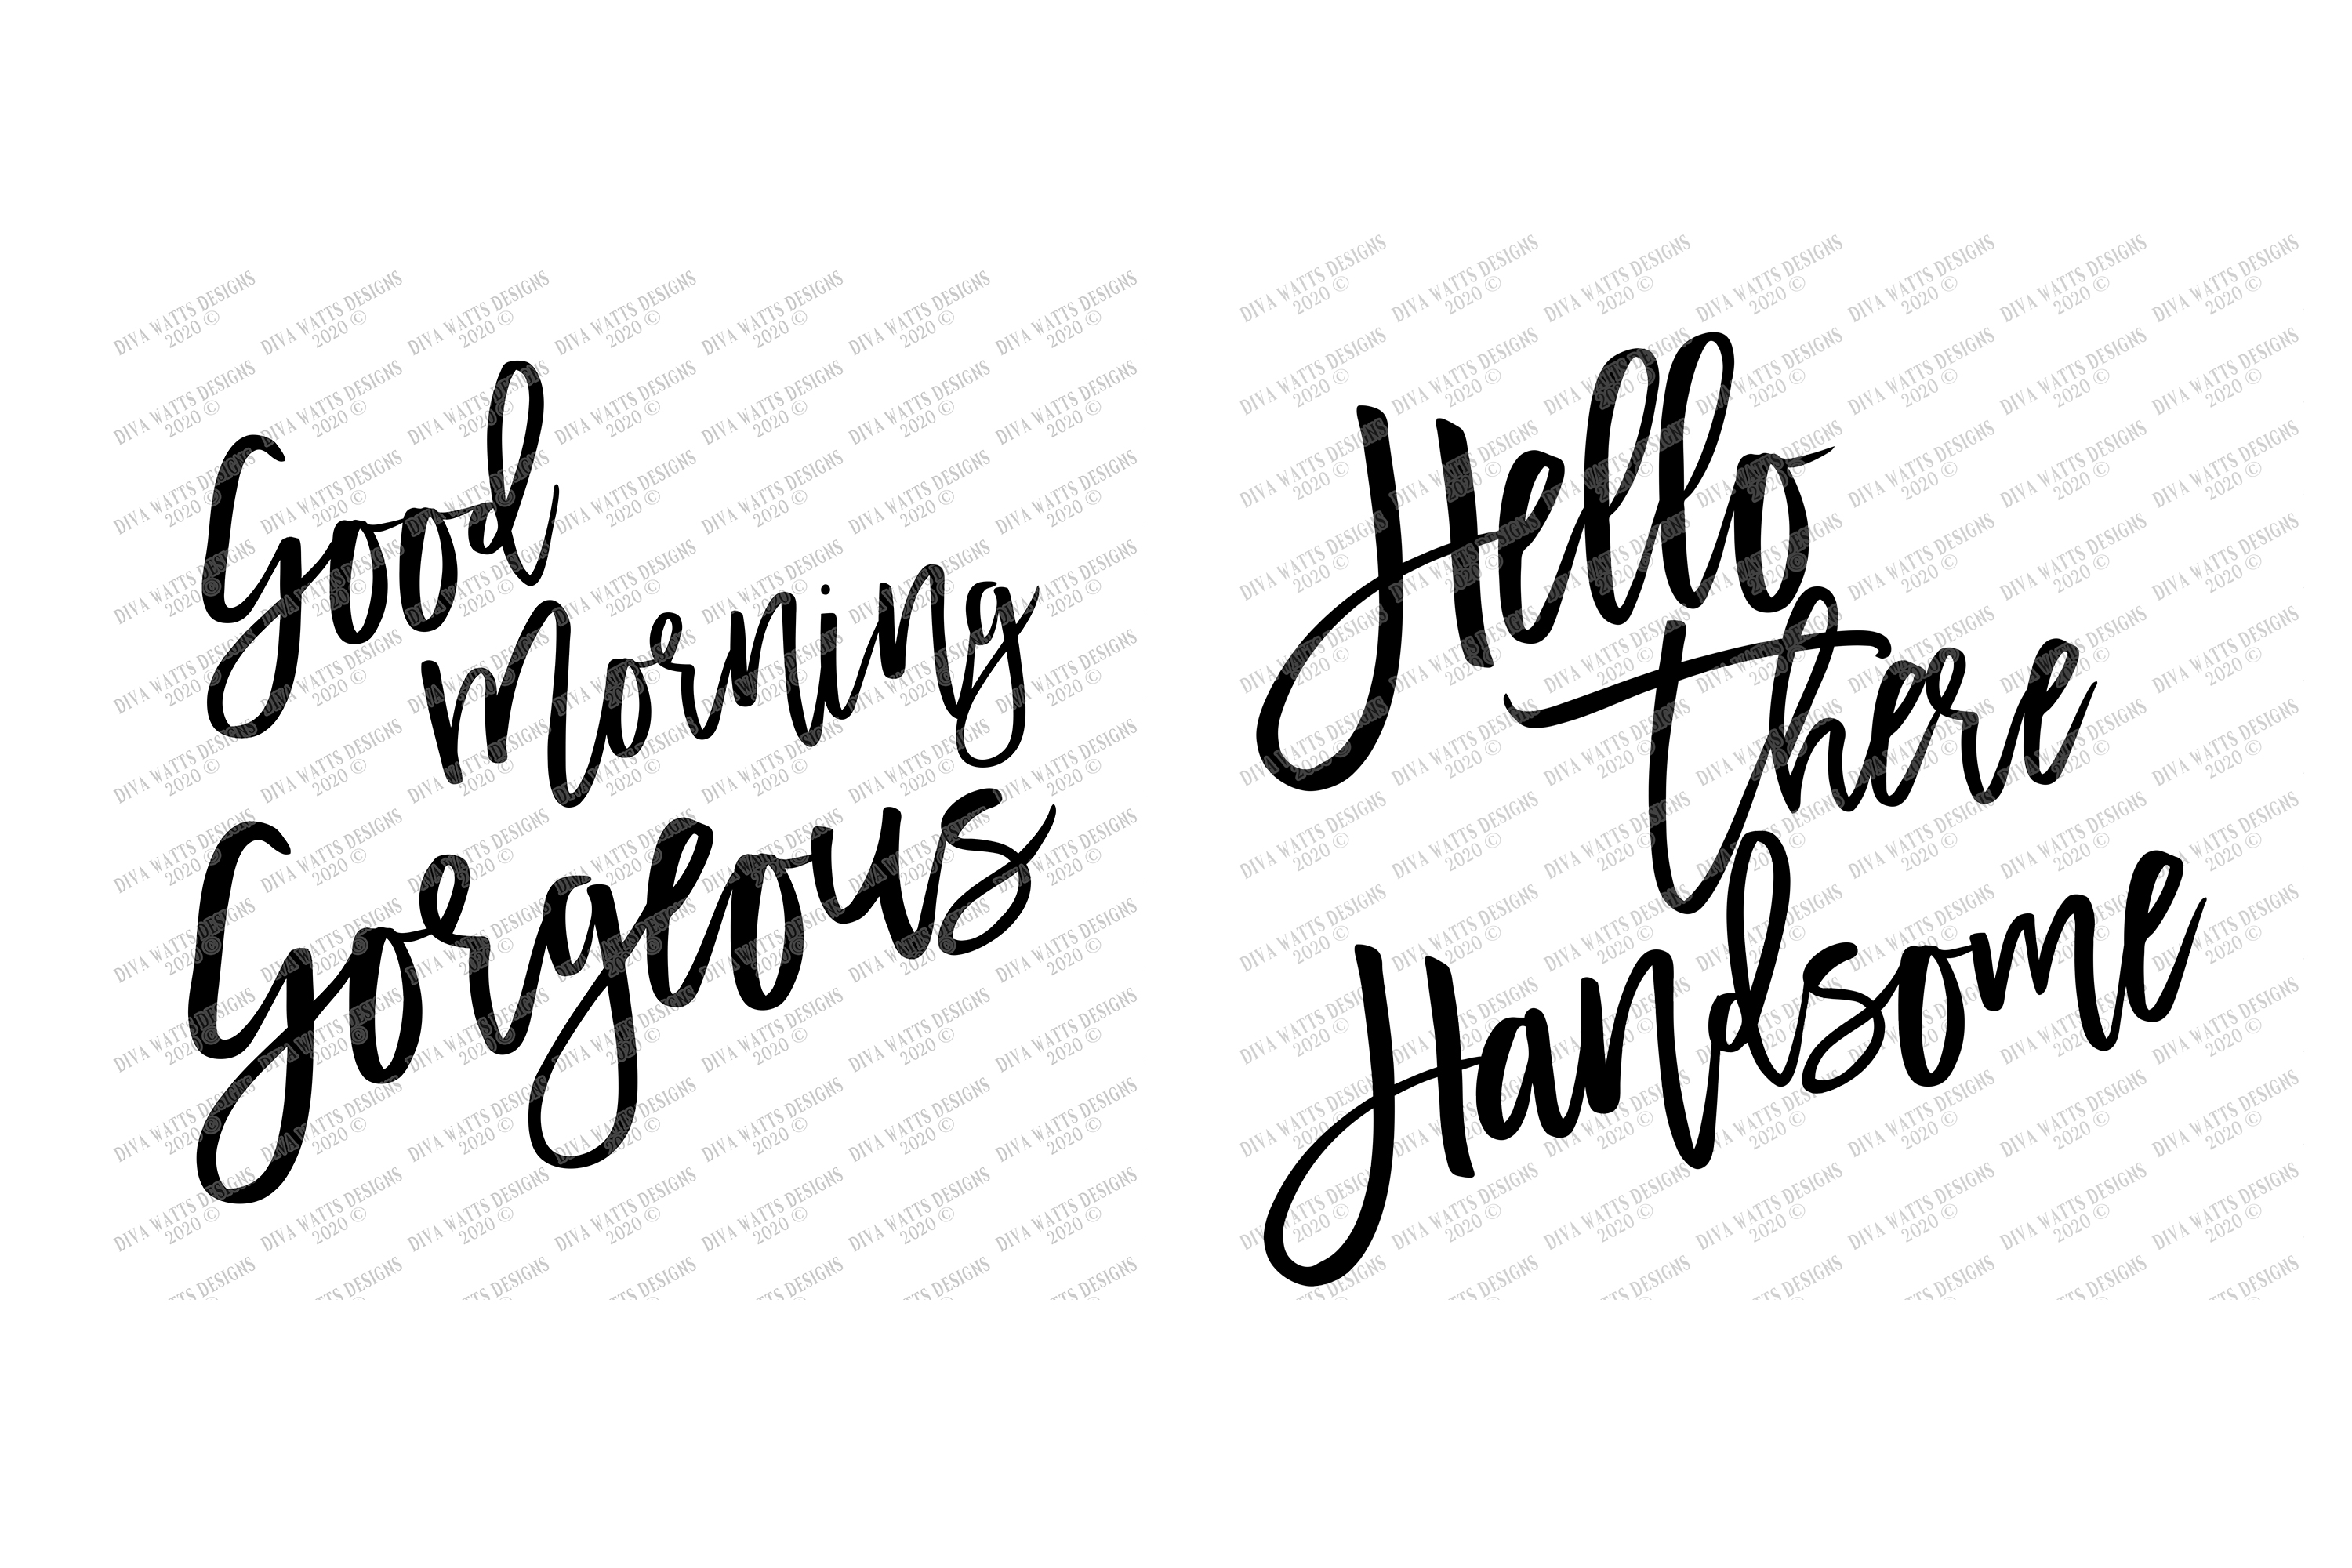 Good Morning Gorgeous Hello there Handsome Cutting Files Se example image 2